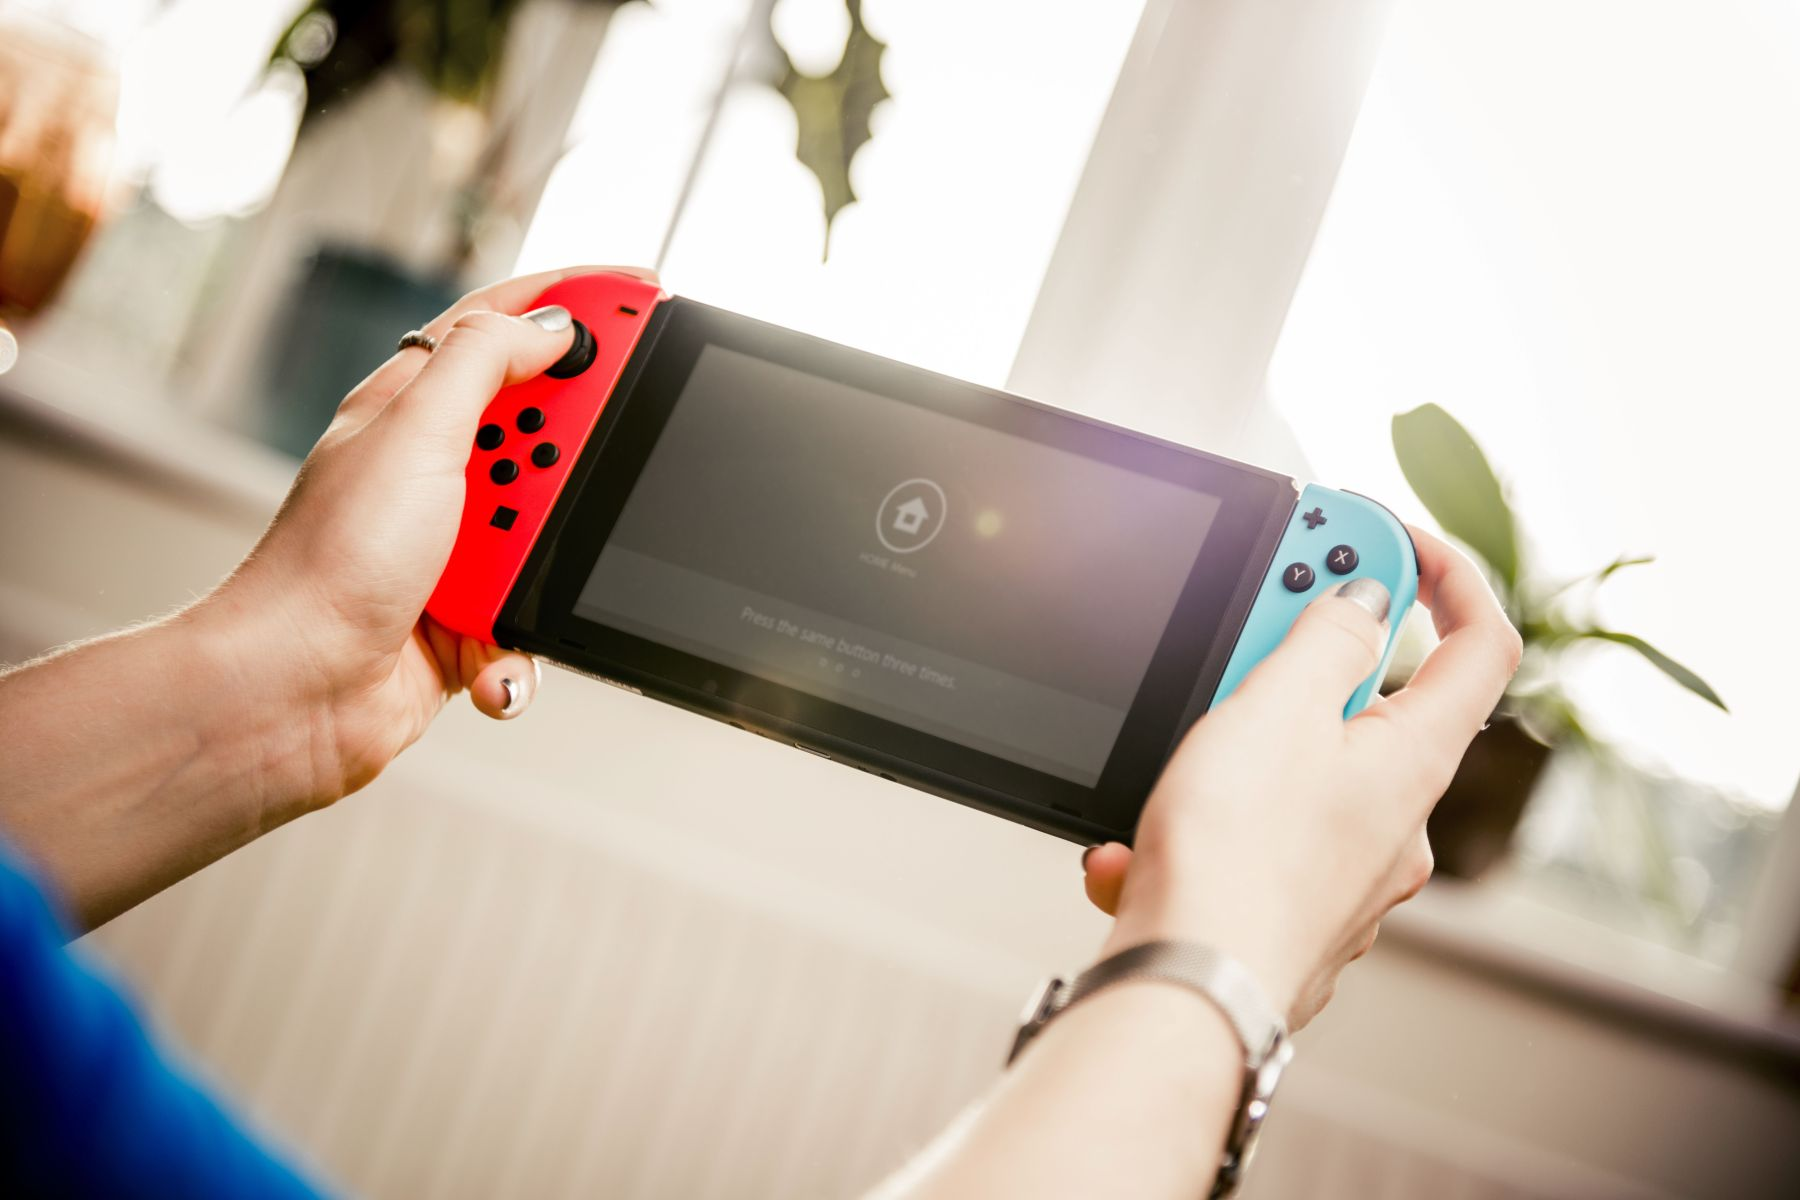 Best Portable Gaming Consoles 2020 Handheld Gaming Devices Compared Rolling Stone